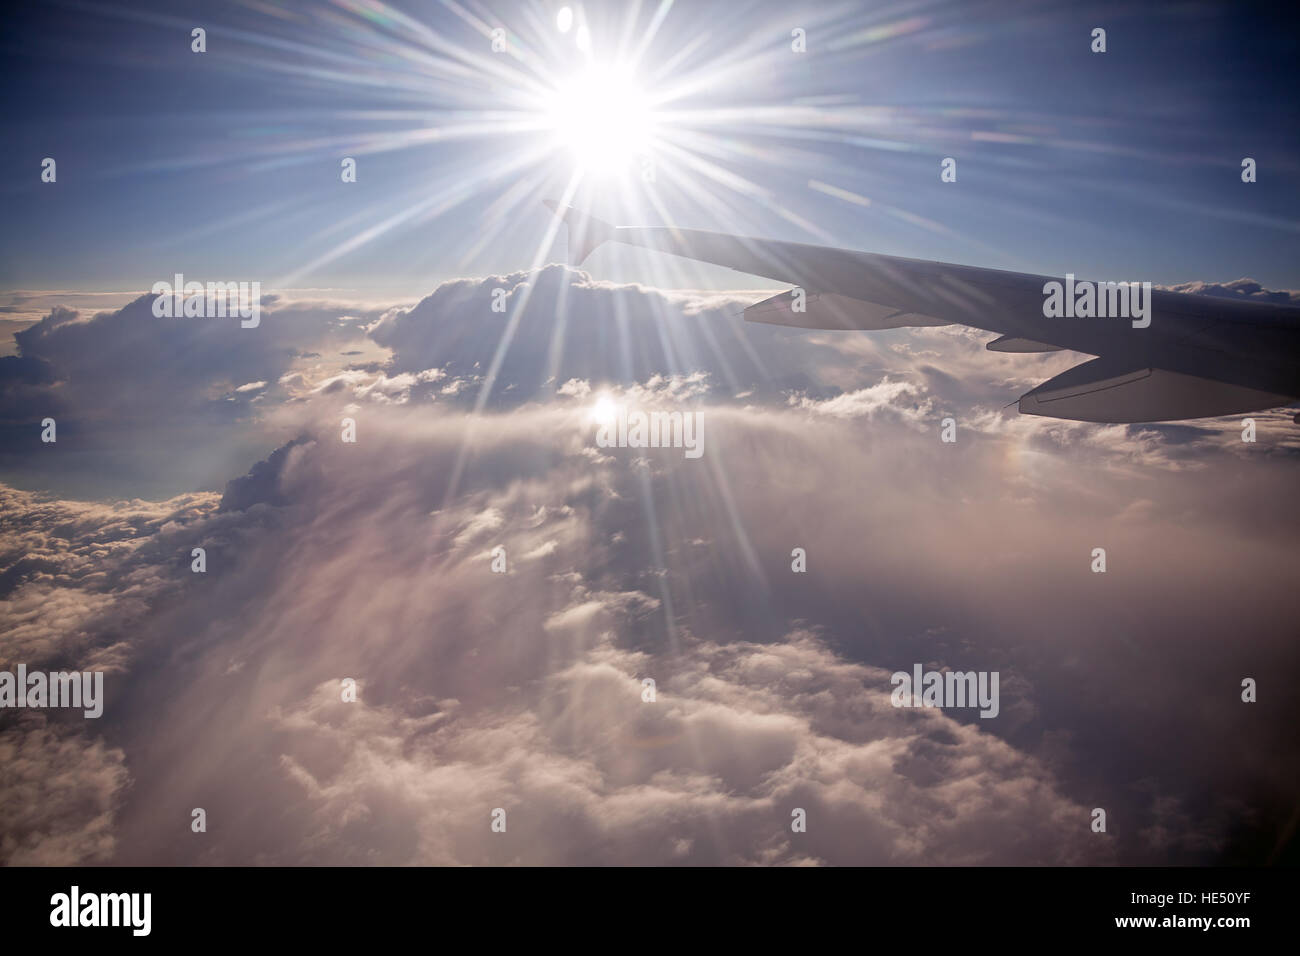 Wing of aircraft on the background of sunny rays and clouds. Fast aerial transport, traveling and voyage concept. Stock Photo